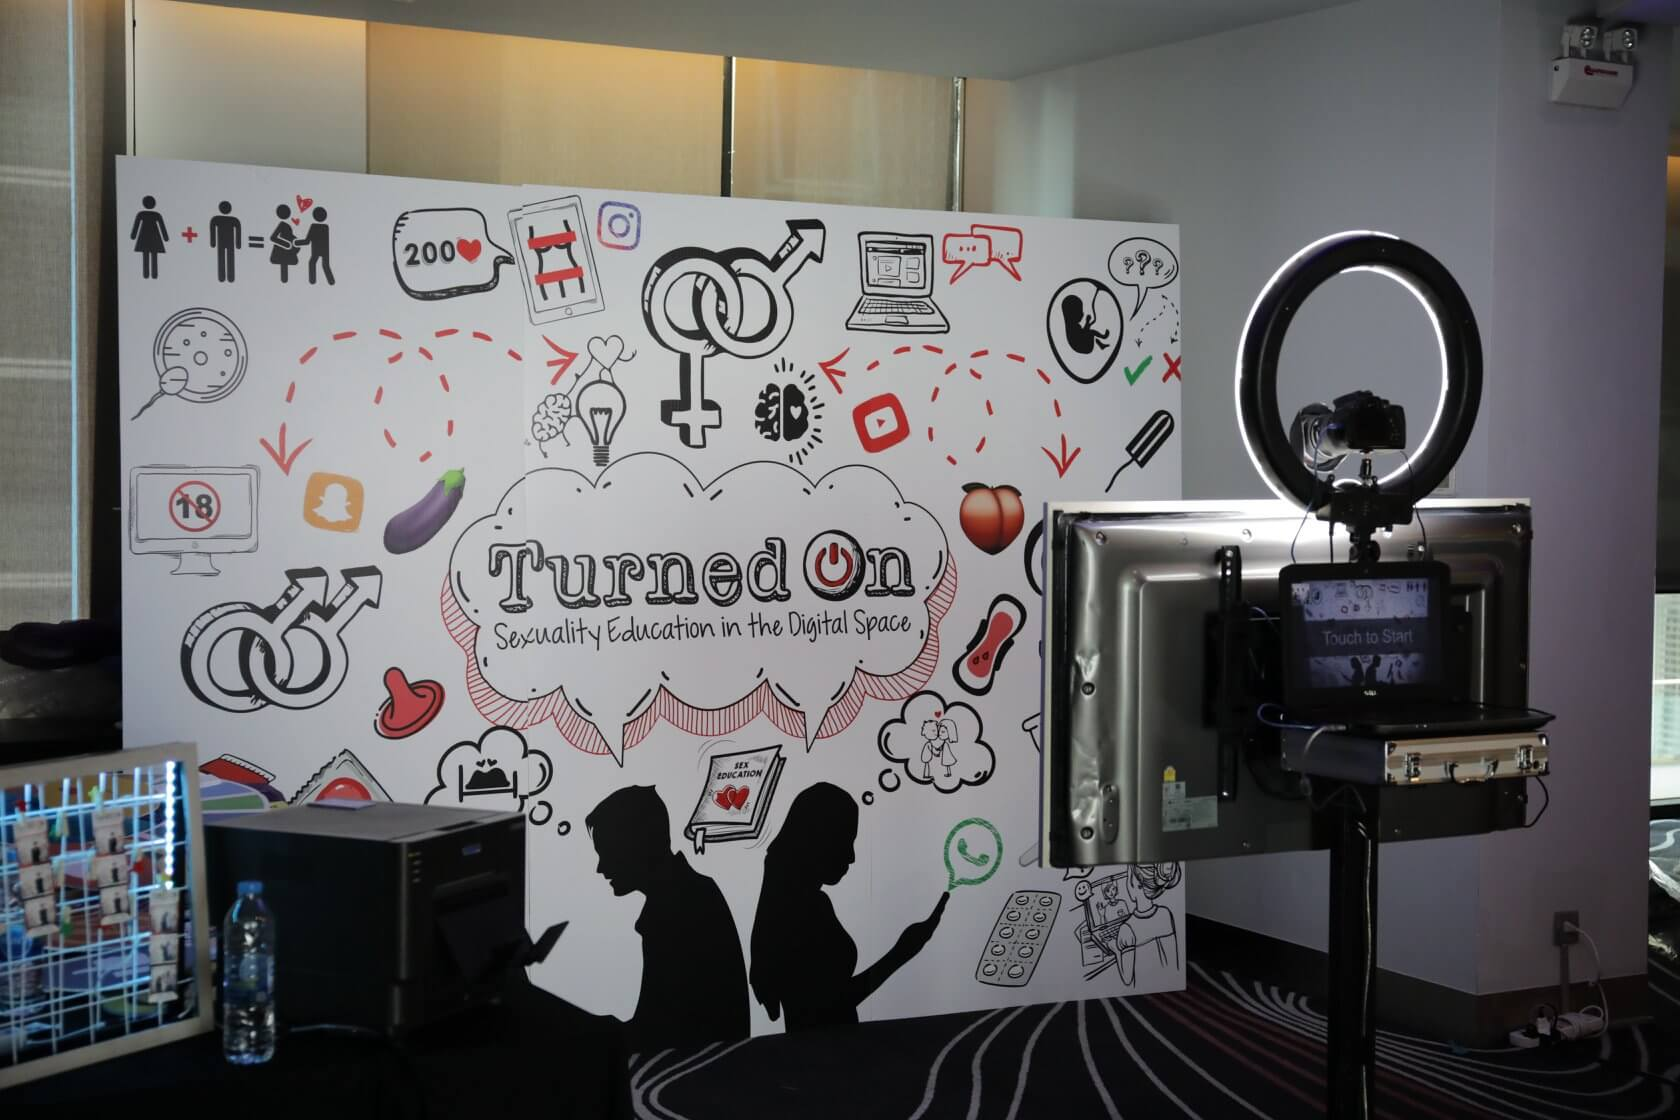 TURNED ON: SEXUALITY EDUCATION RESEARCH & PROGRAMS Image